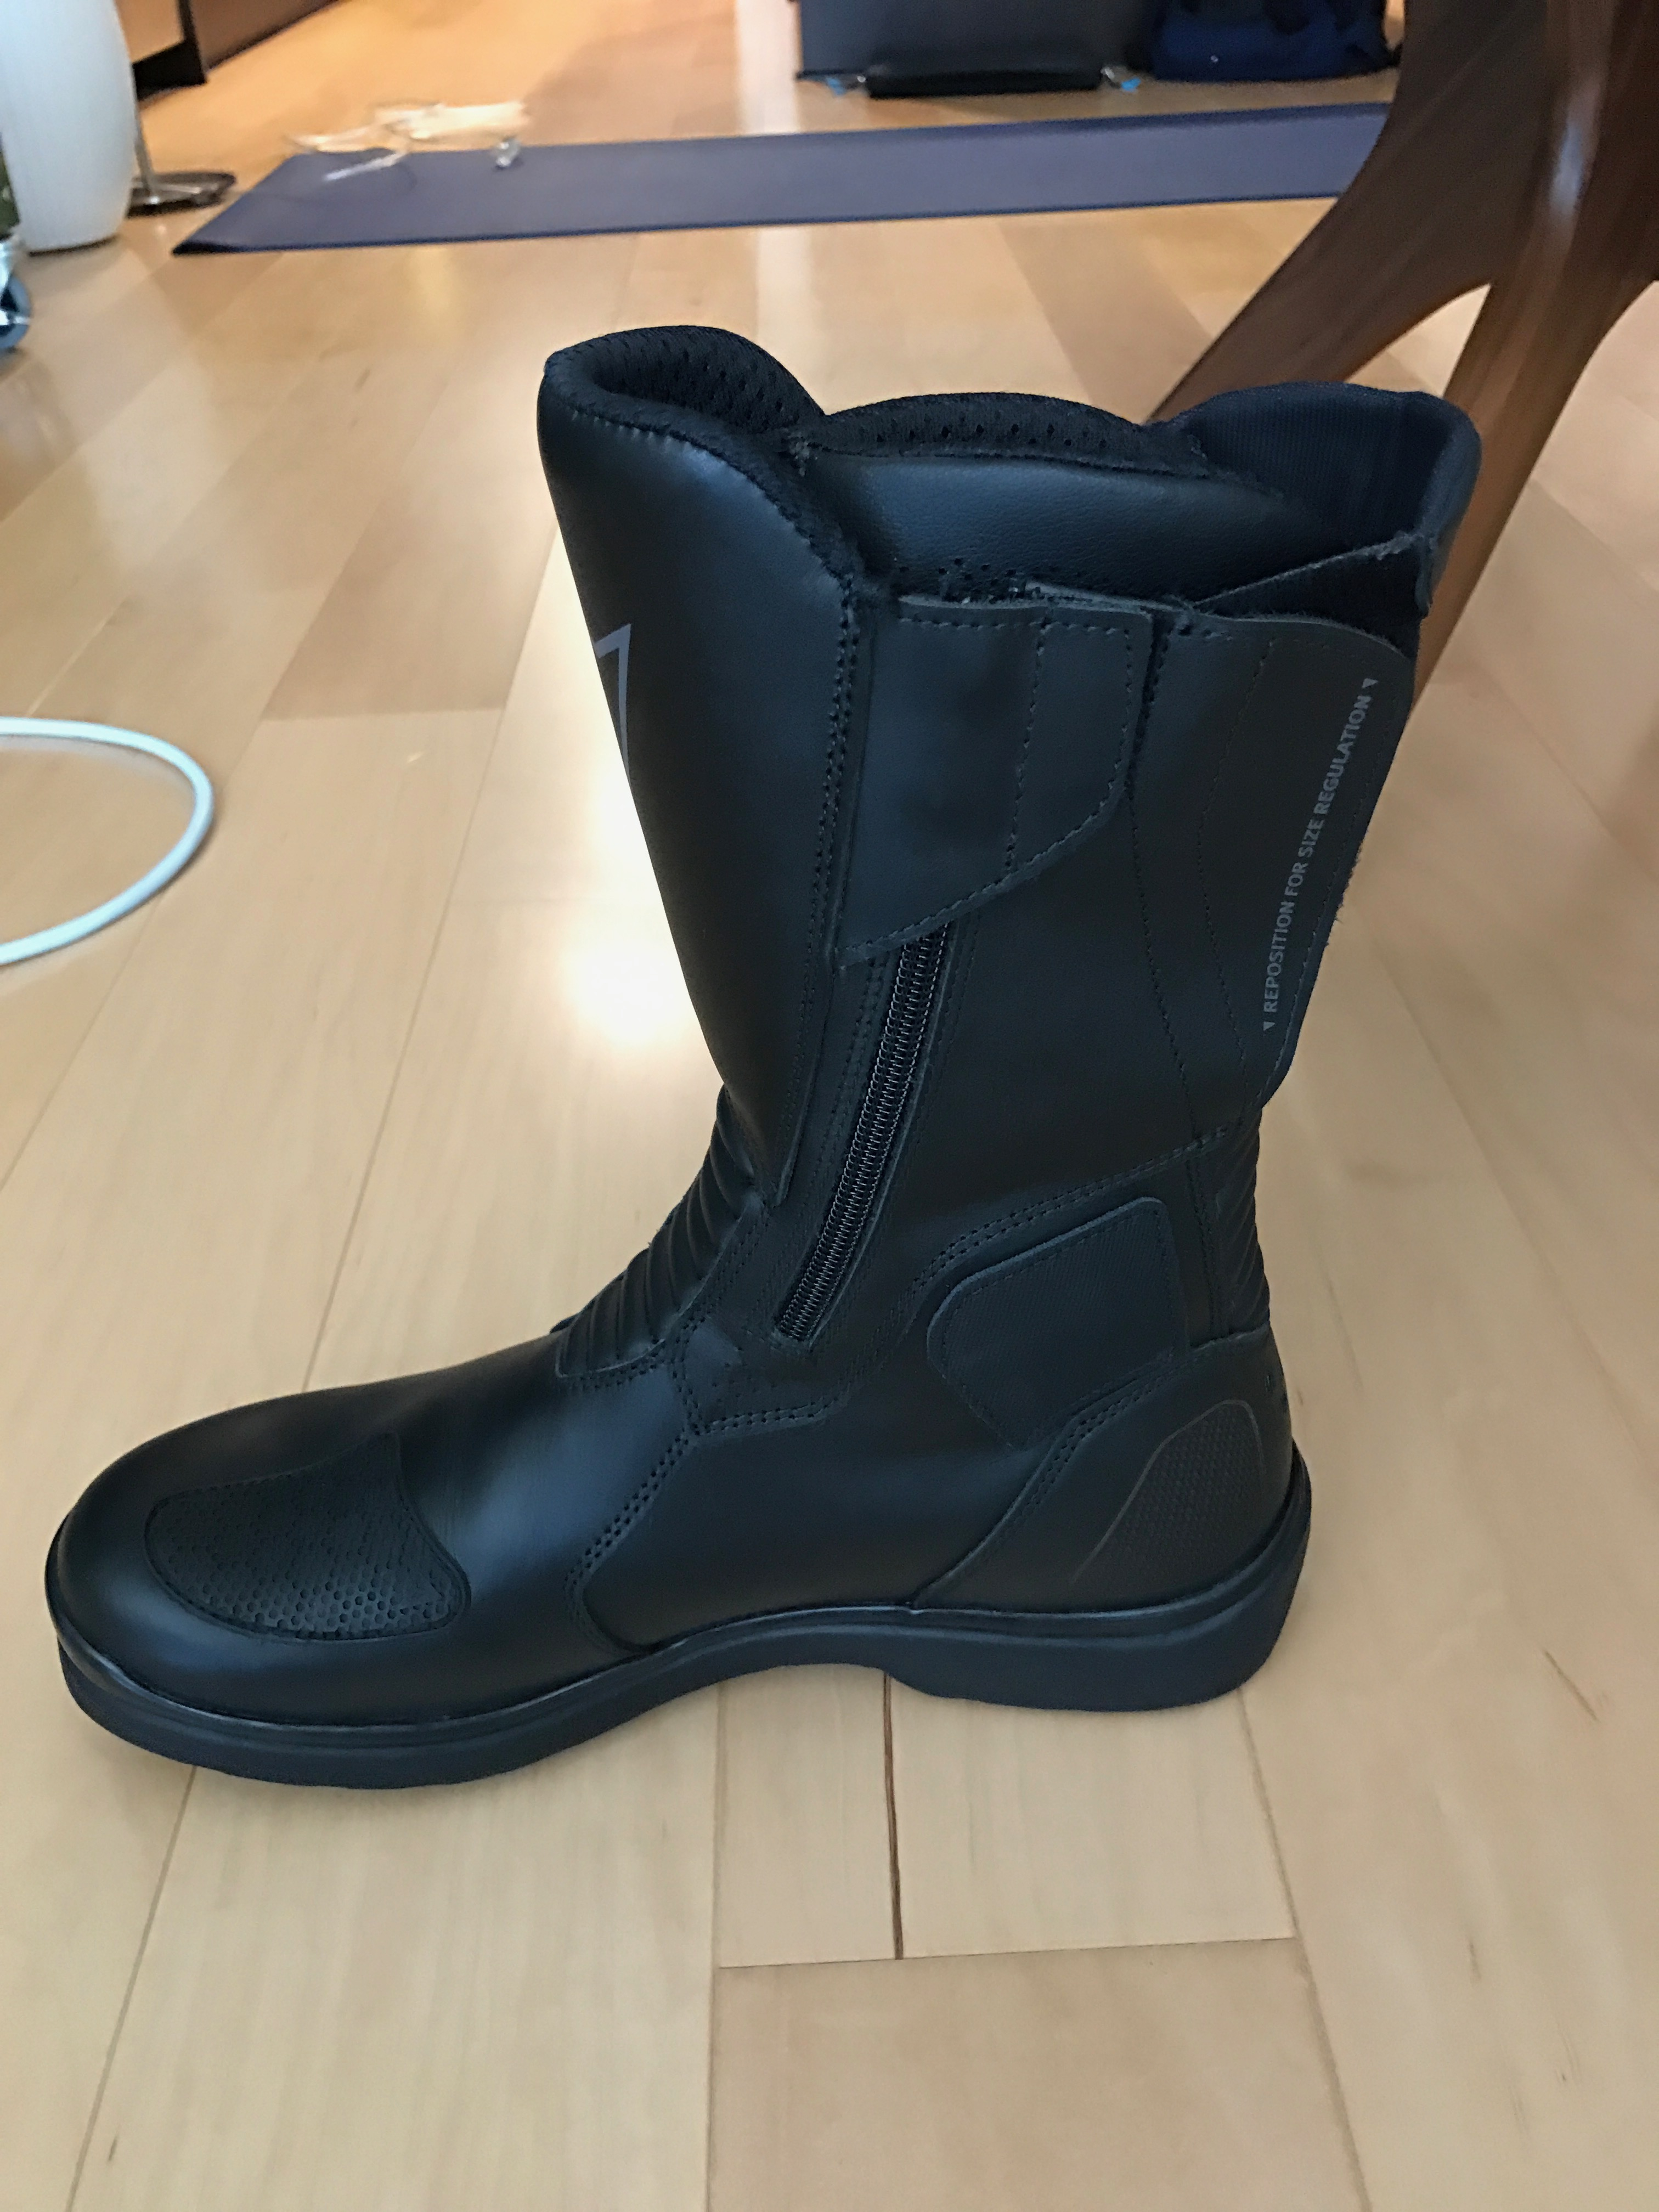 Dainese Latemar Gore Tex Boots Brand New For Sale | Ducati